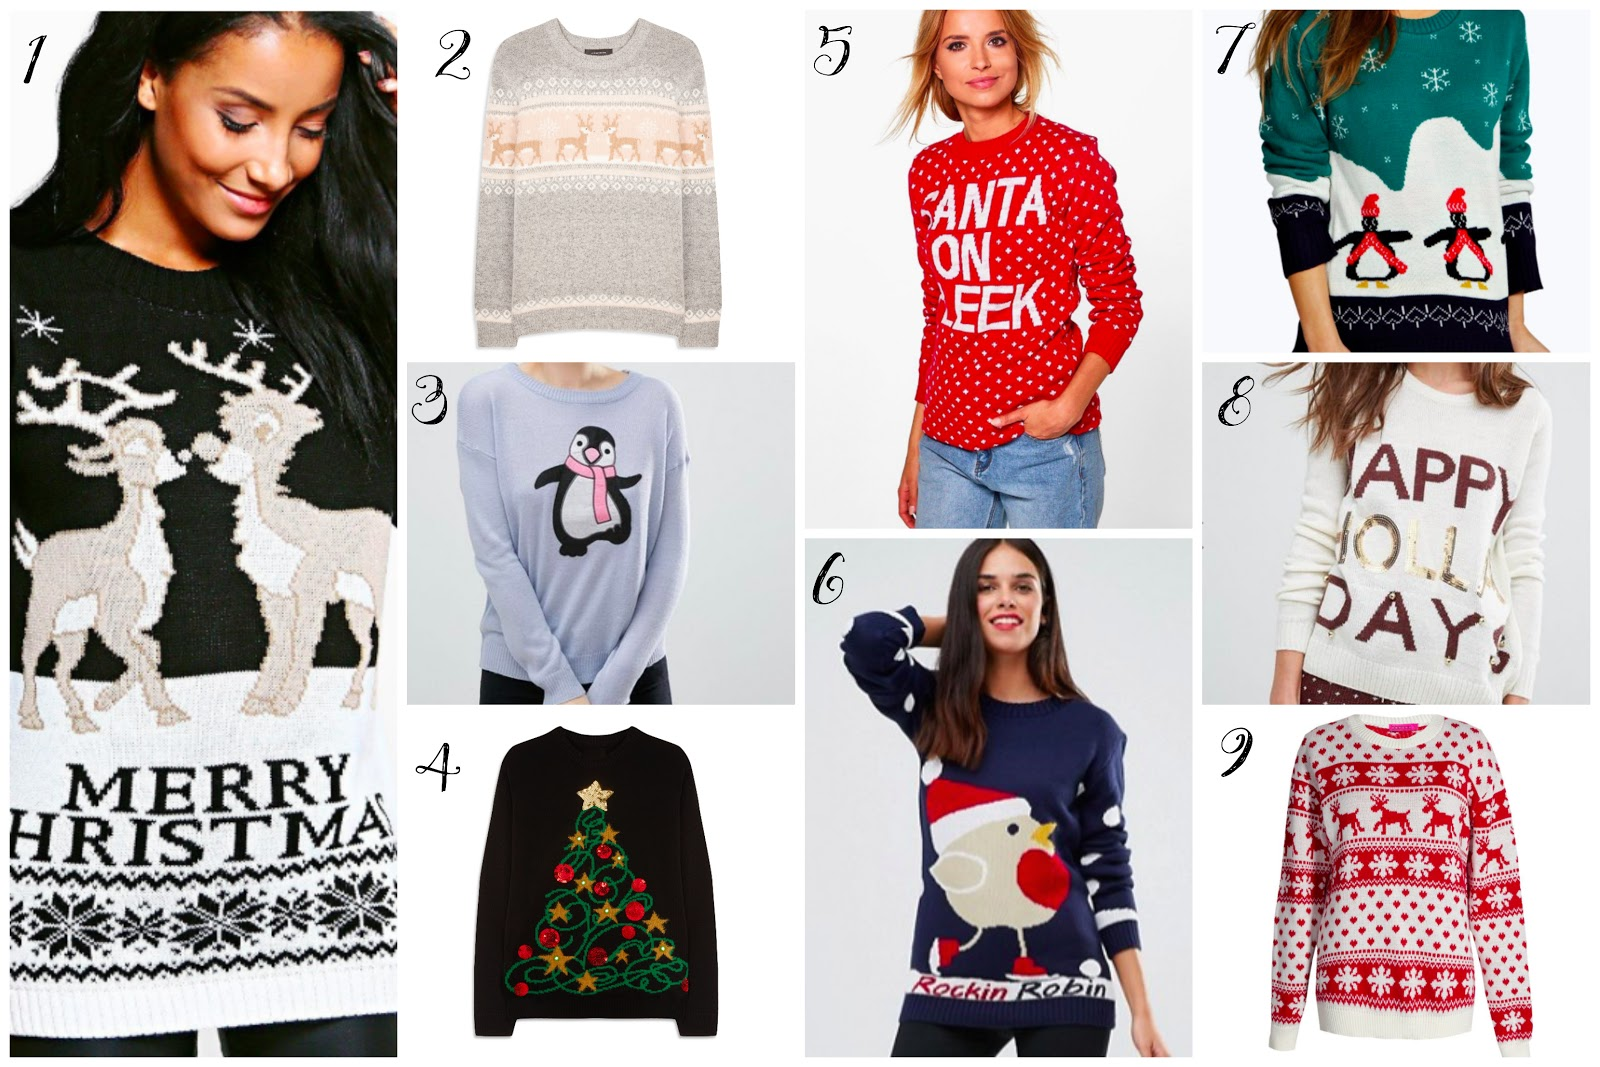 Christmas Jumpers from Asos, Primark & Boohoo